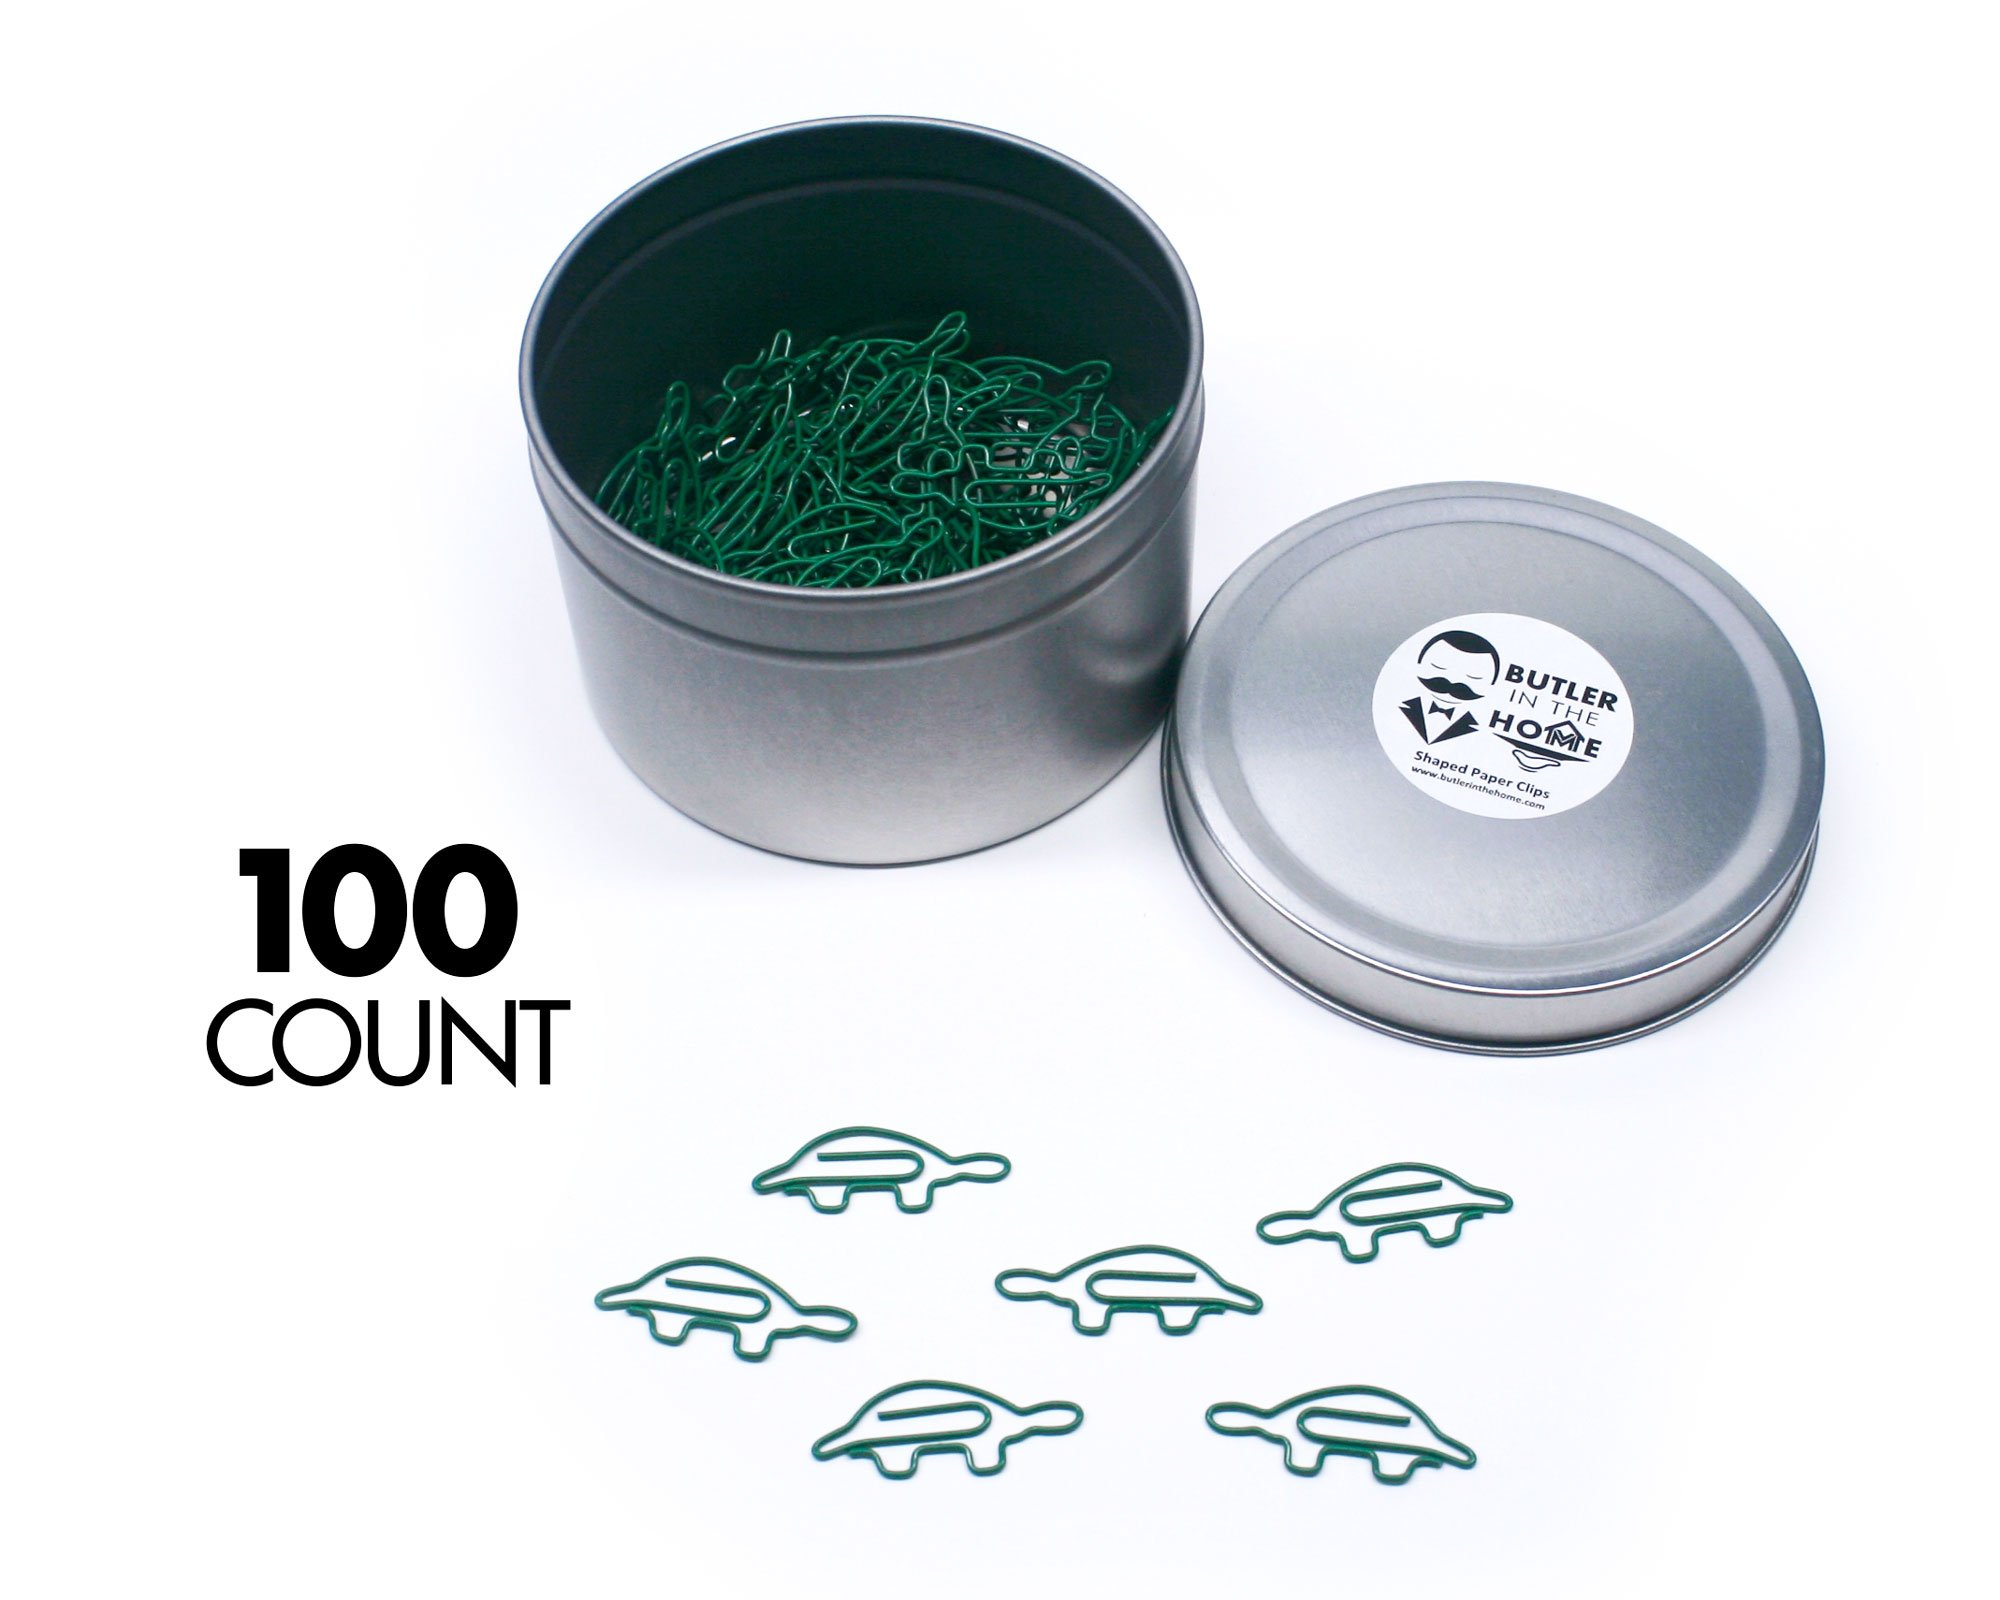 Butler in the Home Turtle Shaped Paper Clips Great For Paper Clip Collectors or Office Gift - Comes in Round Tin with Lid and Gift Box (100 Count Green)